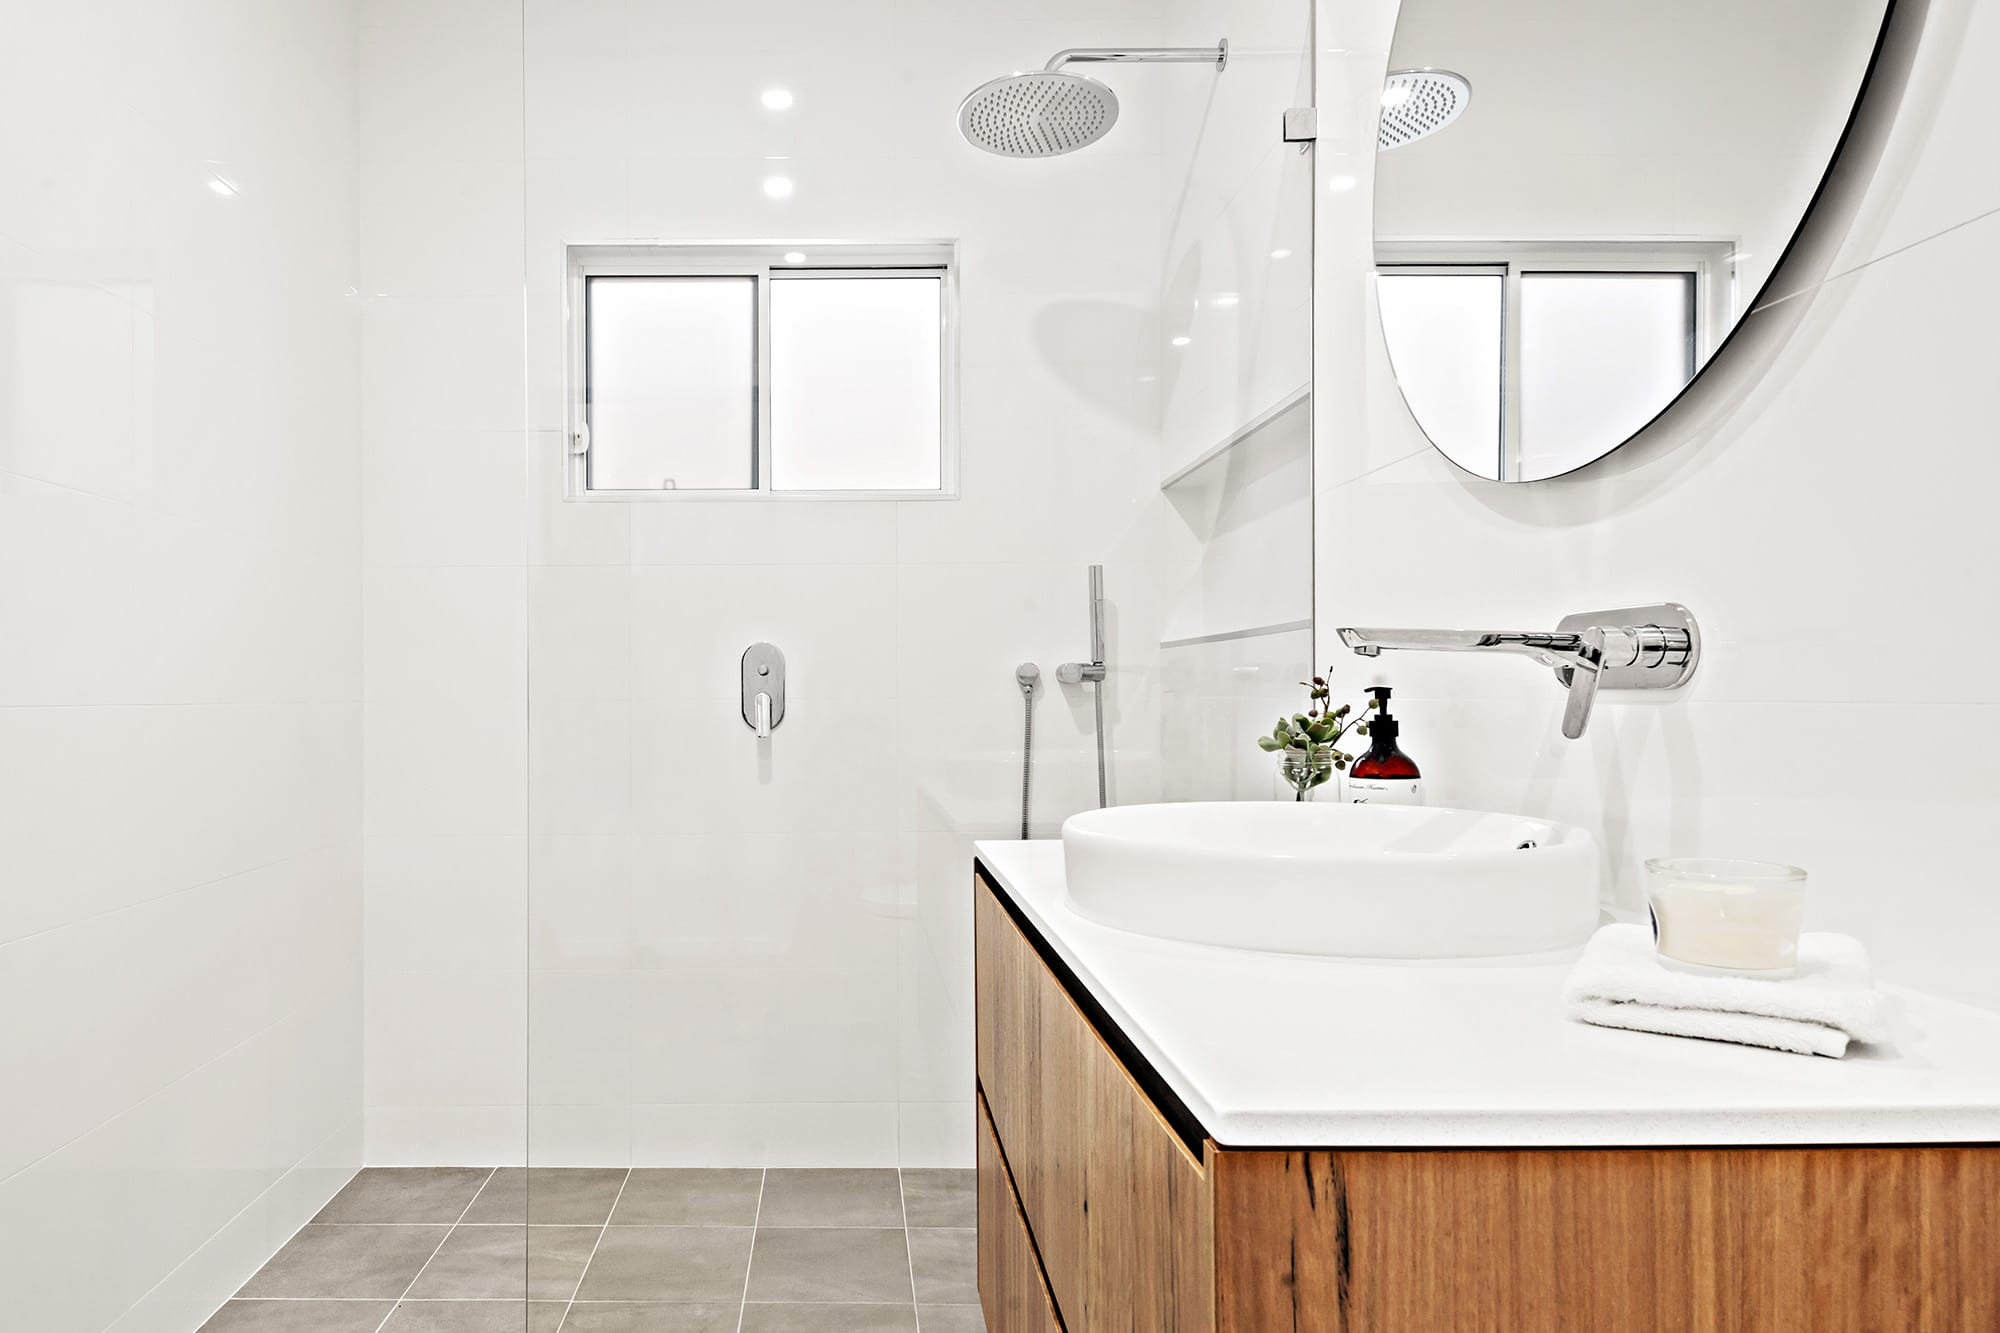 Bligh Street | Caves Beach - https://www.peonyandsilk.com.au/wp-content/uploads/2019/03/6-Bathroom.jpg